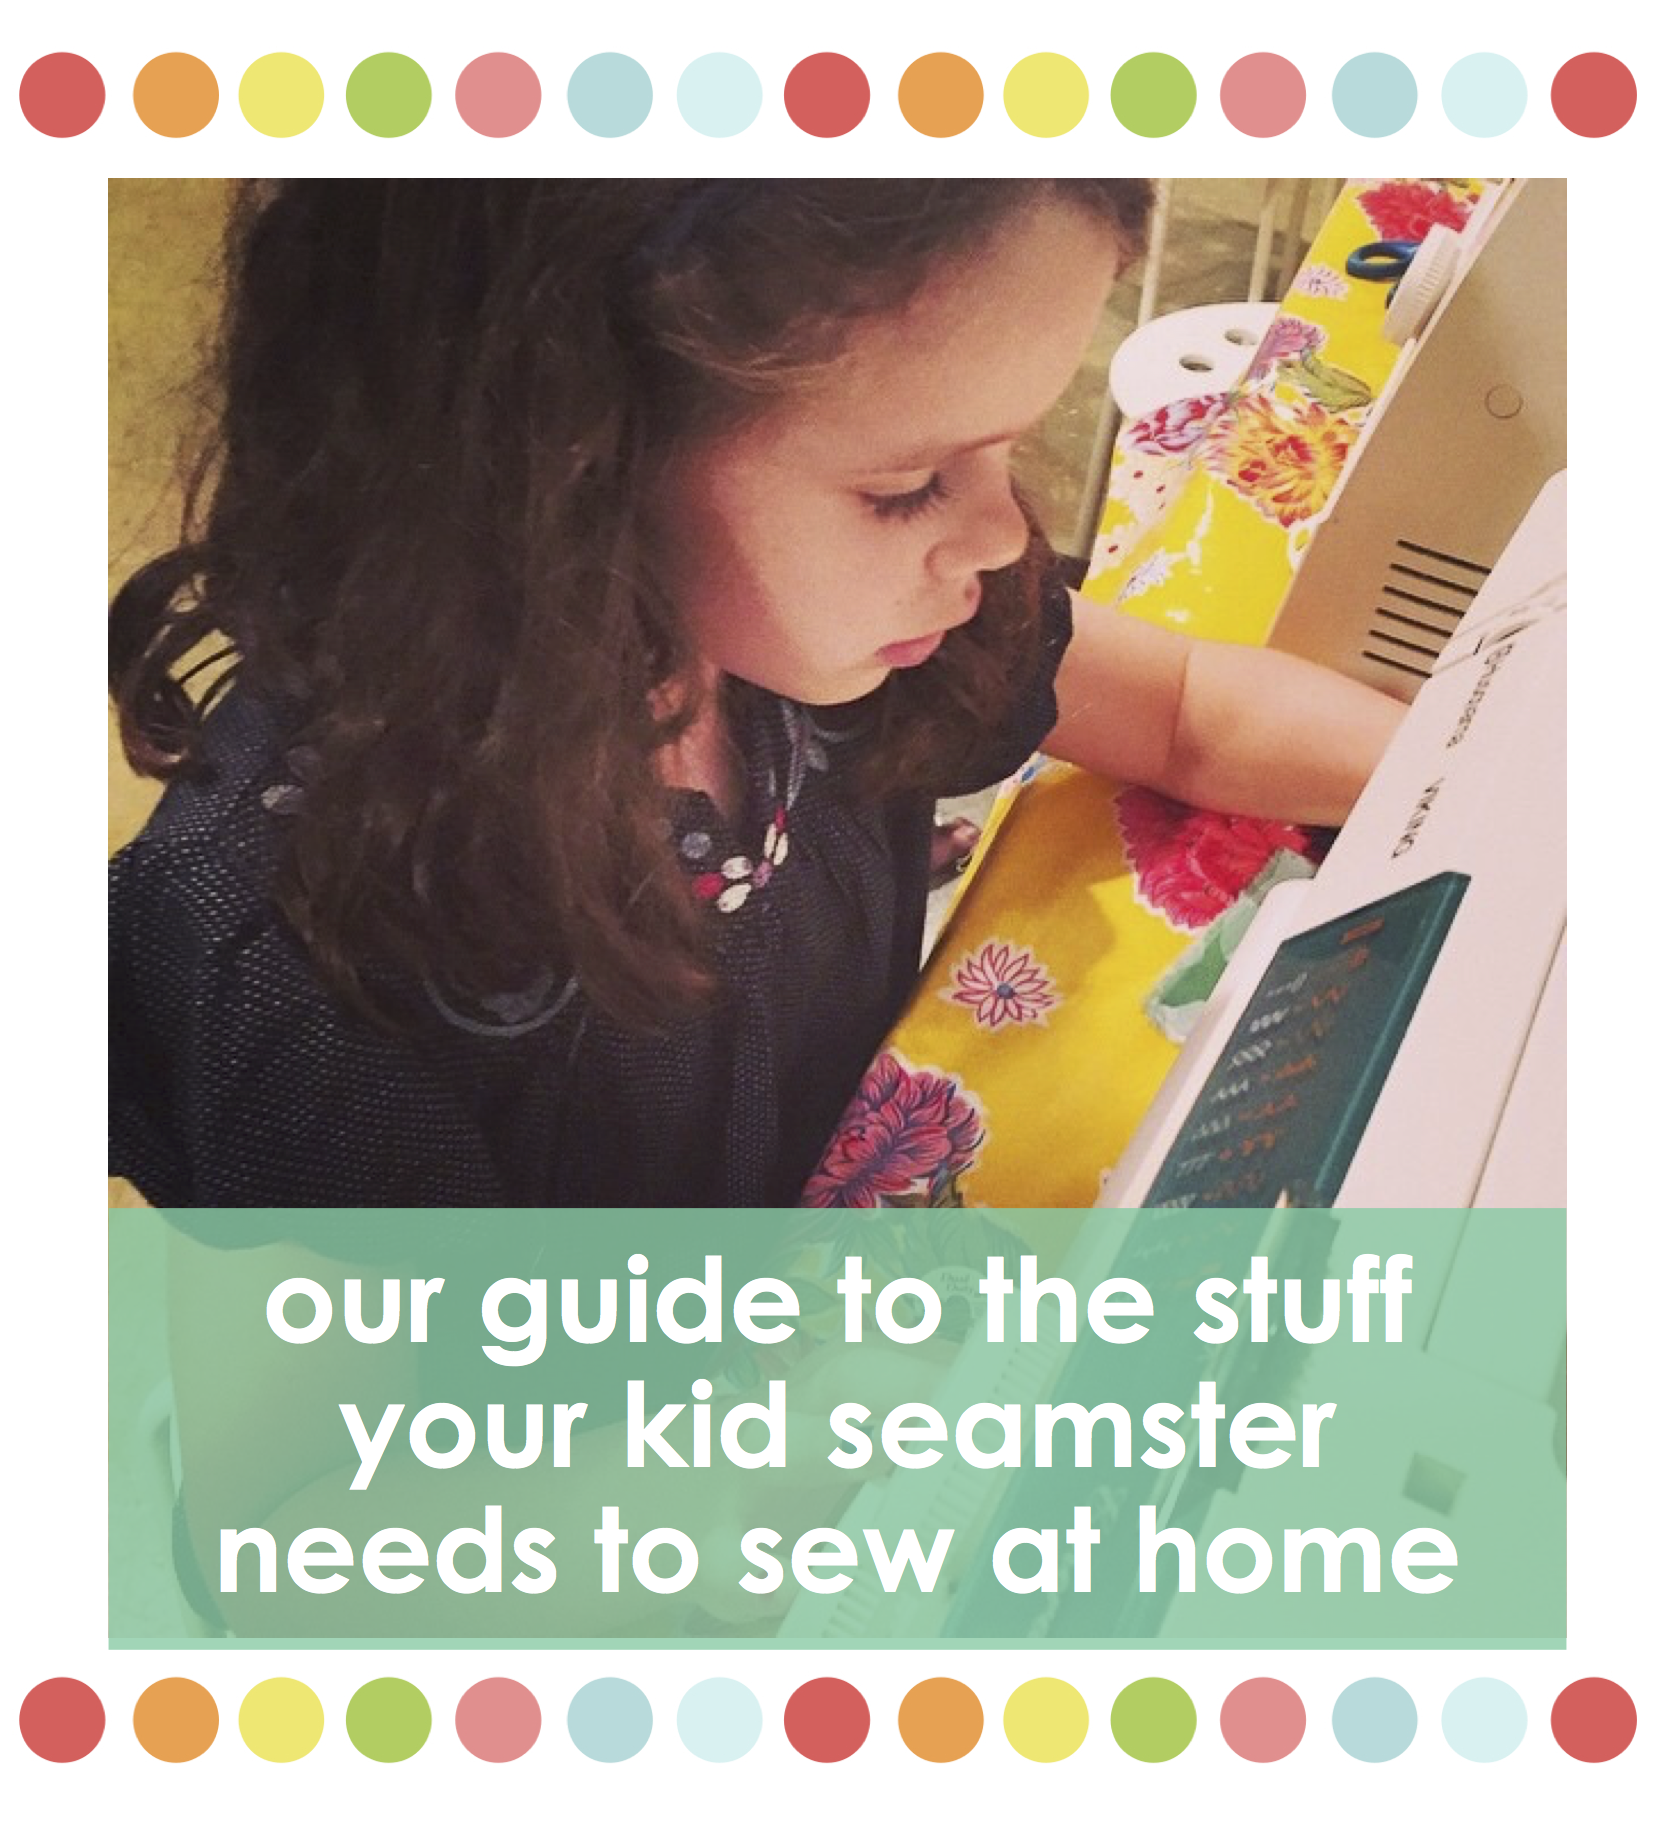 our guide to the stuff your kid seamster needs to sew at home